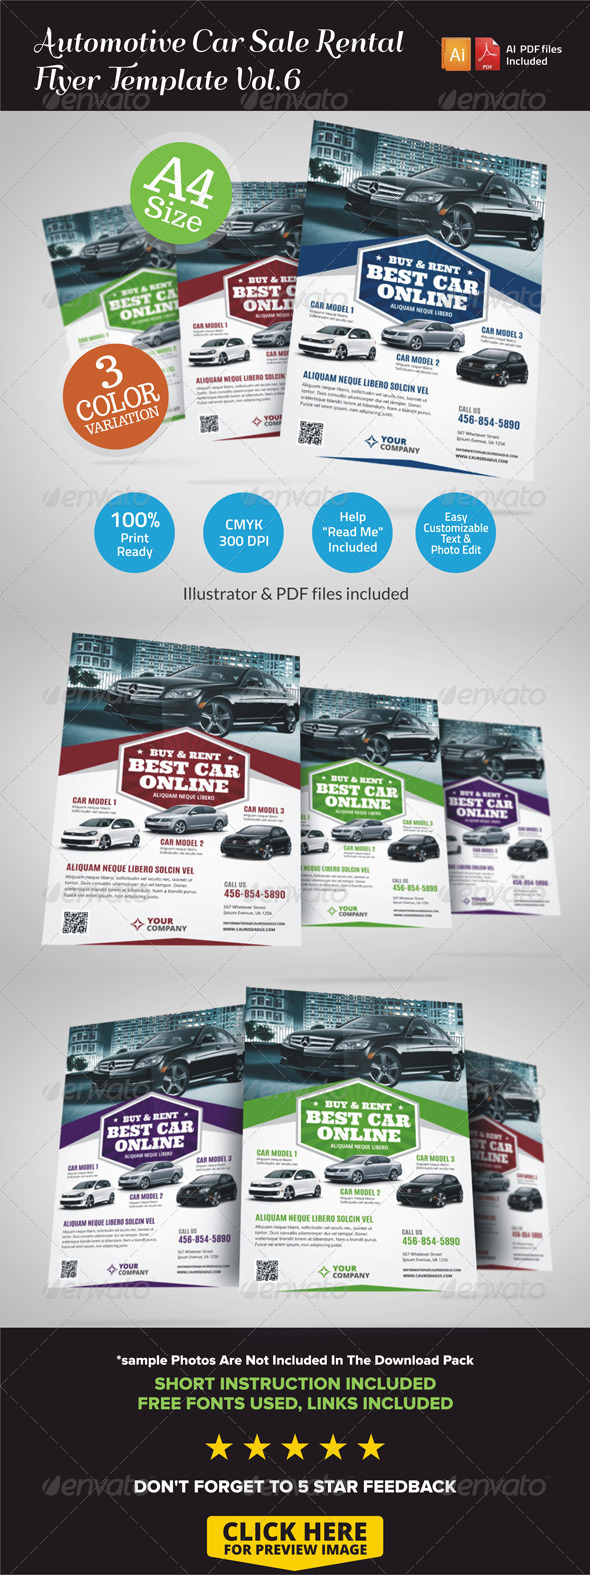 GraphicRiver Automotive Car Sale Rental Flyer Ad Vol.6 7221221